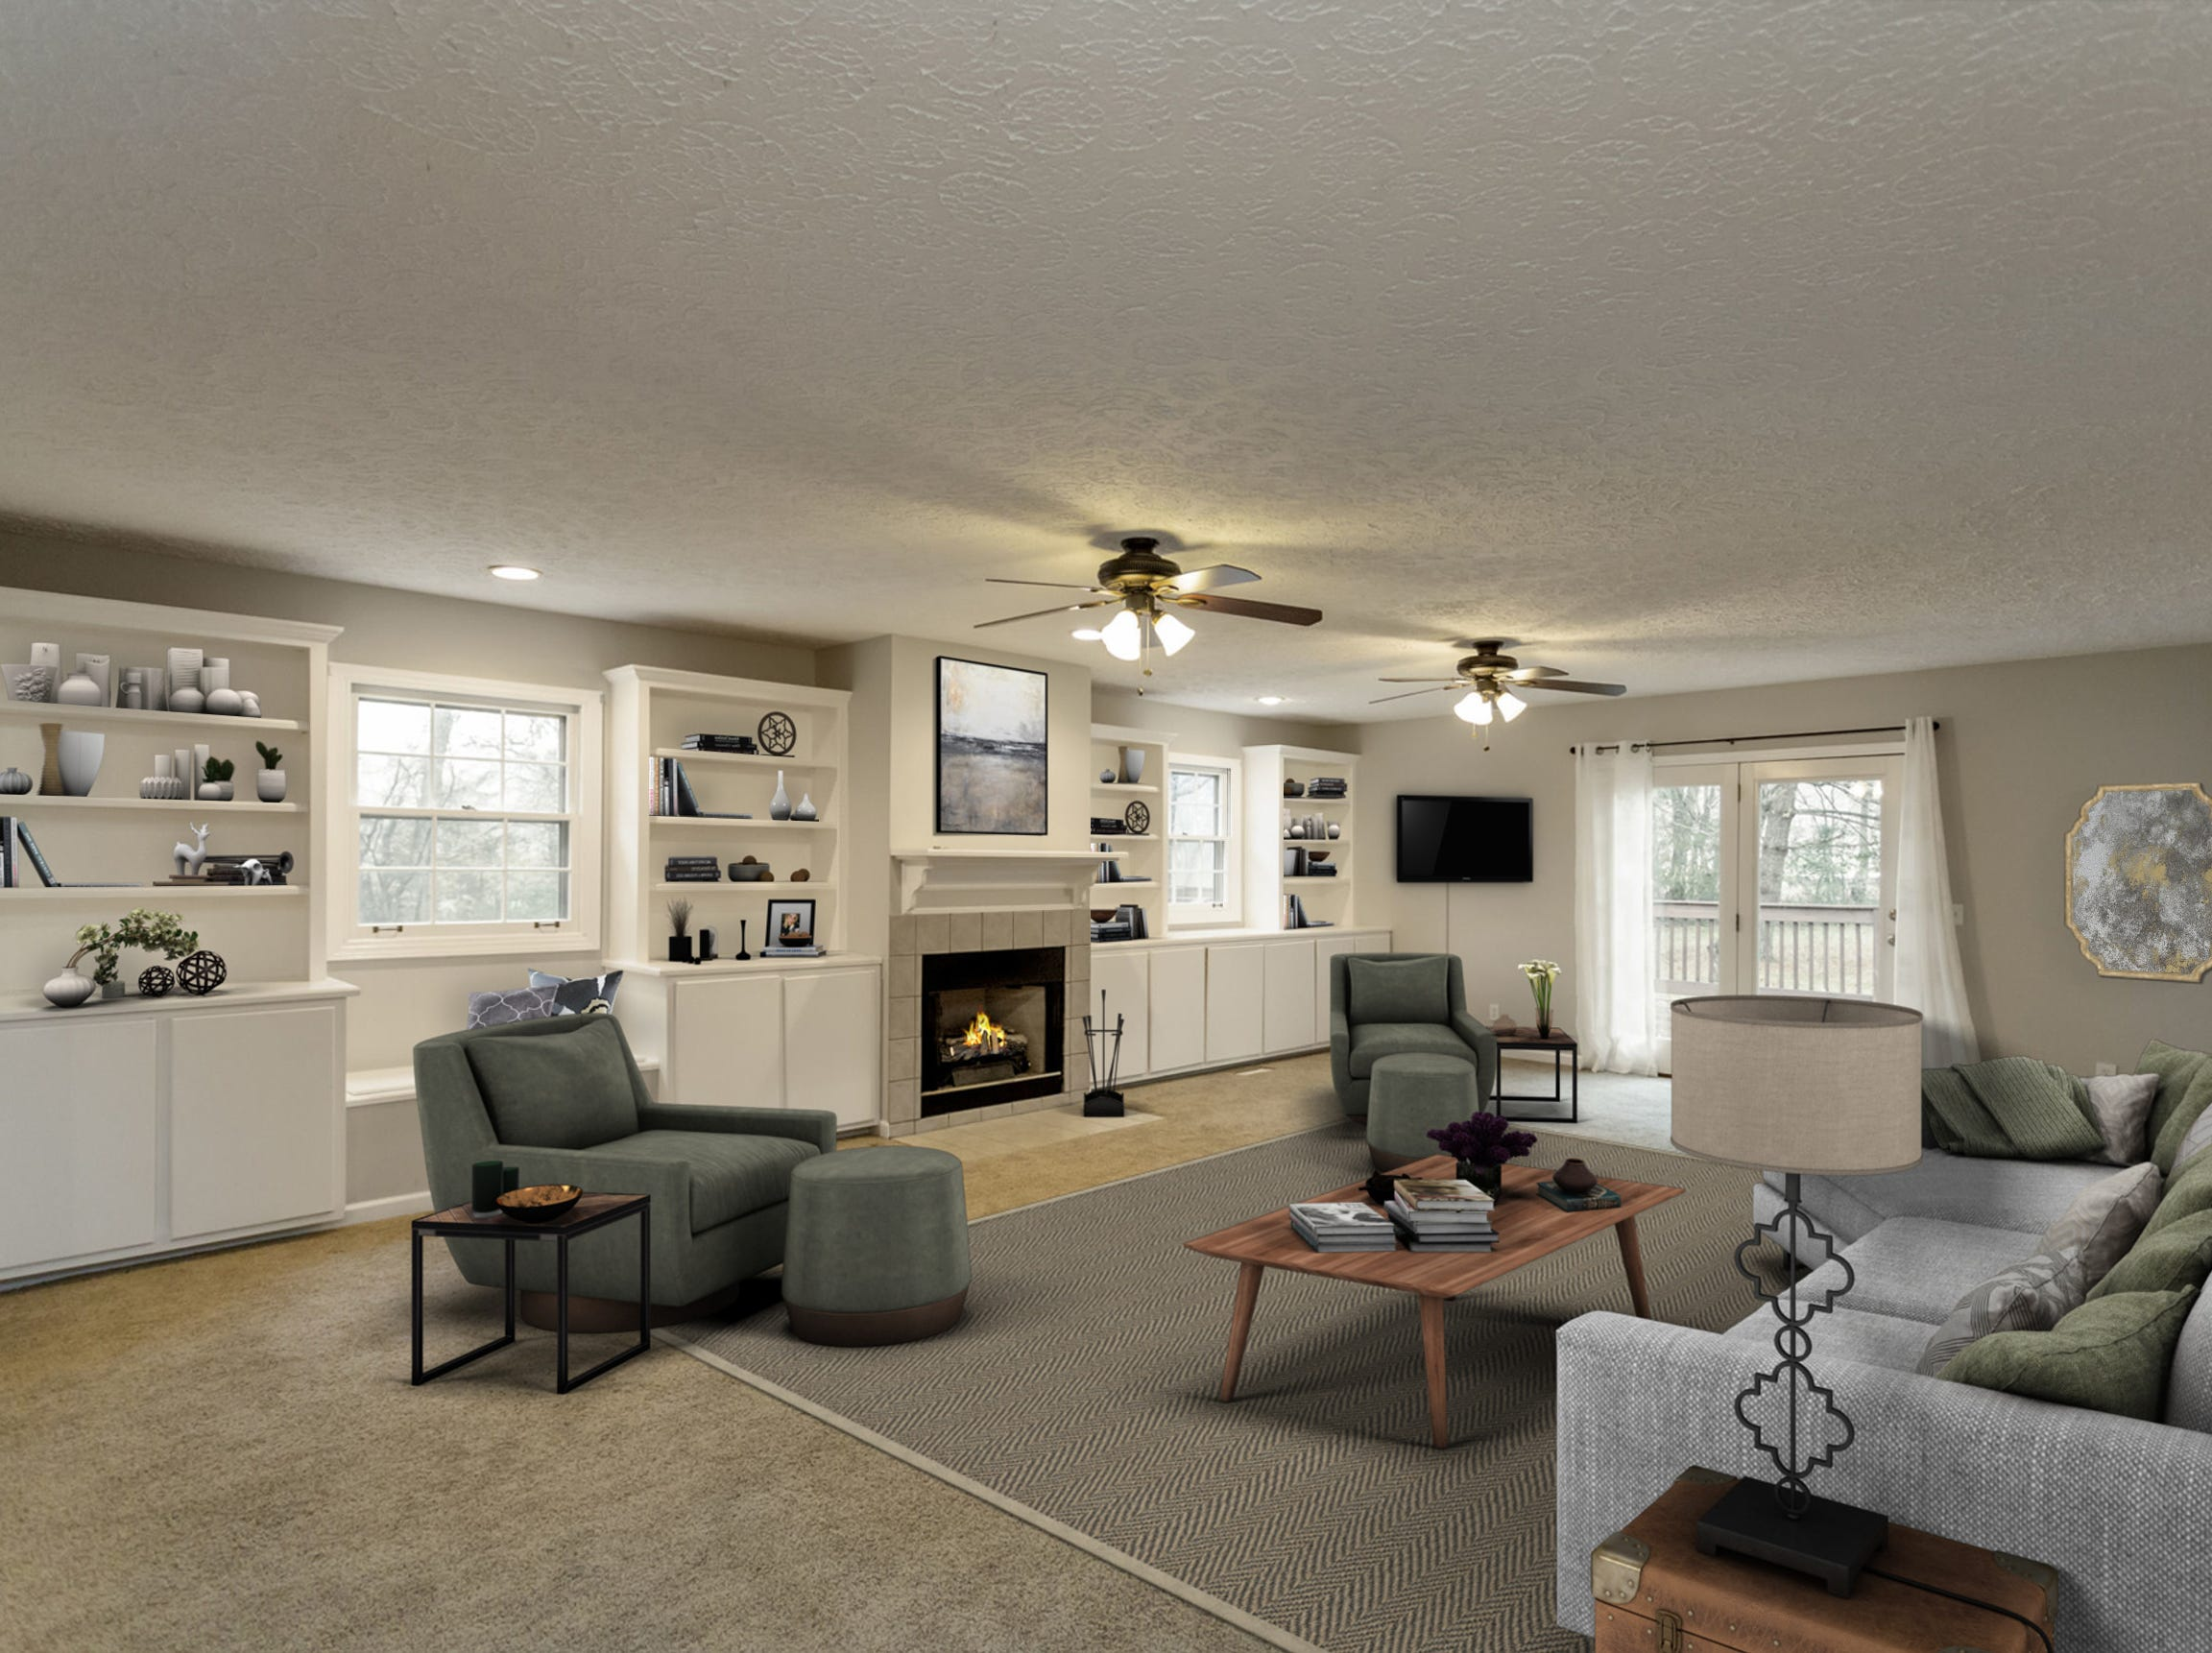 This photo shows the home's living space after virtual staging software was used to furnish the room. This gives home buyers a look at the room with furnishings in it.